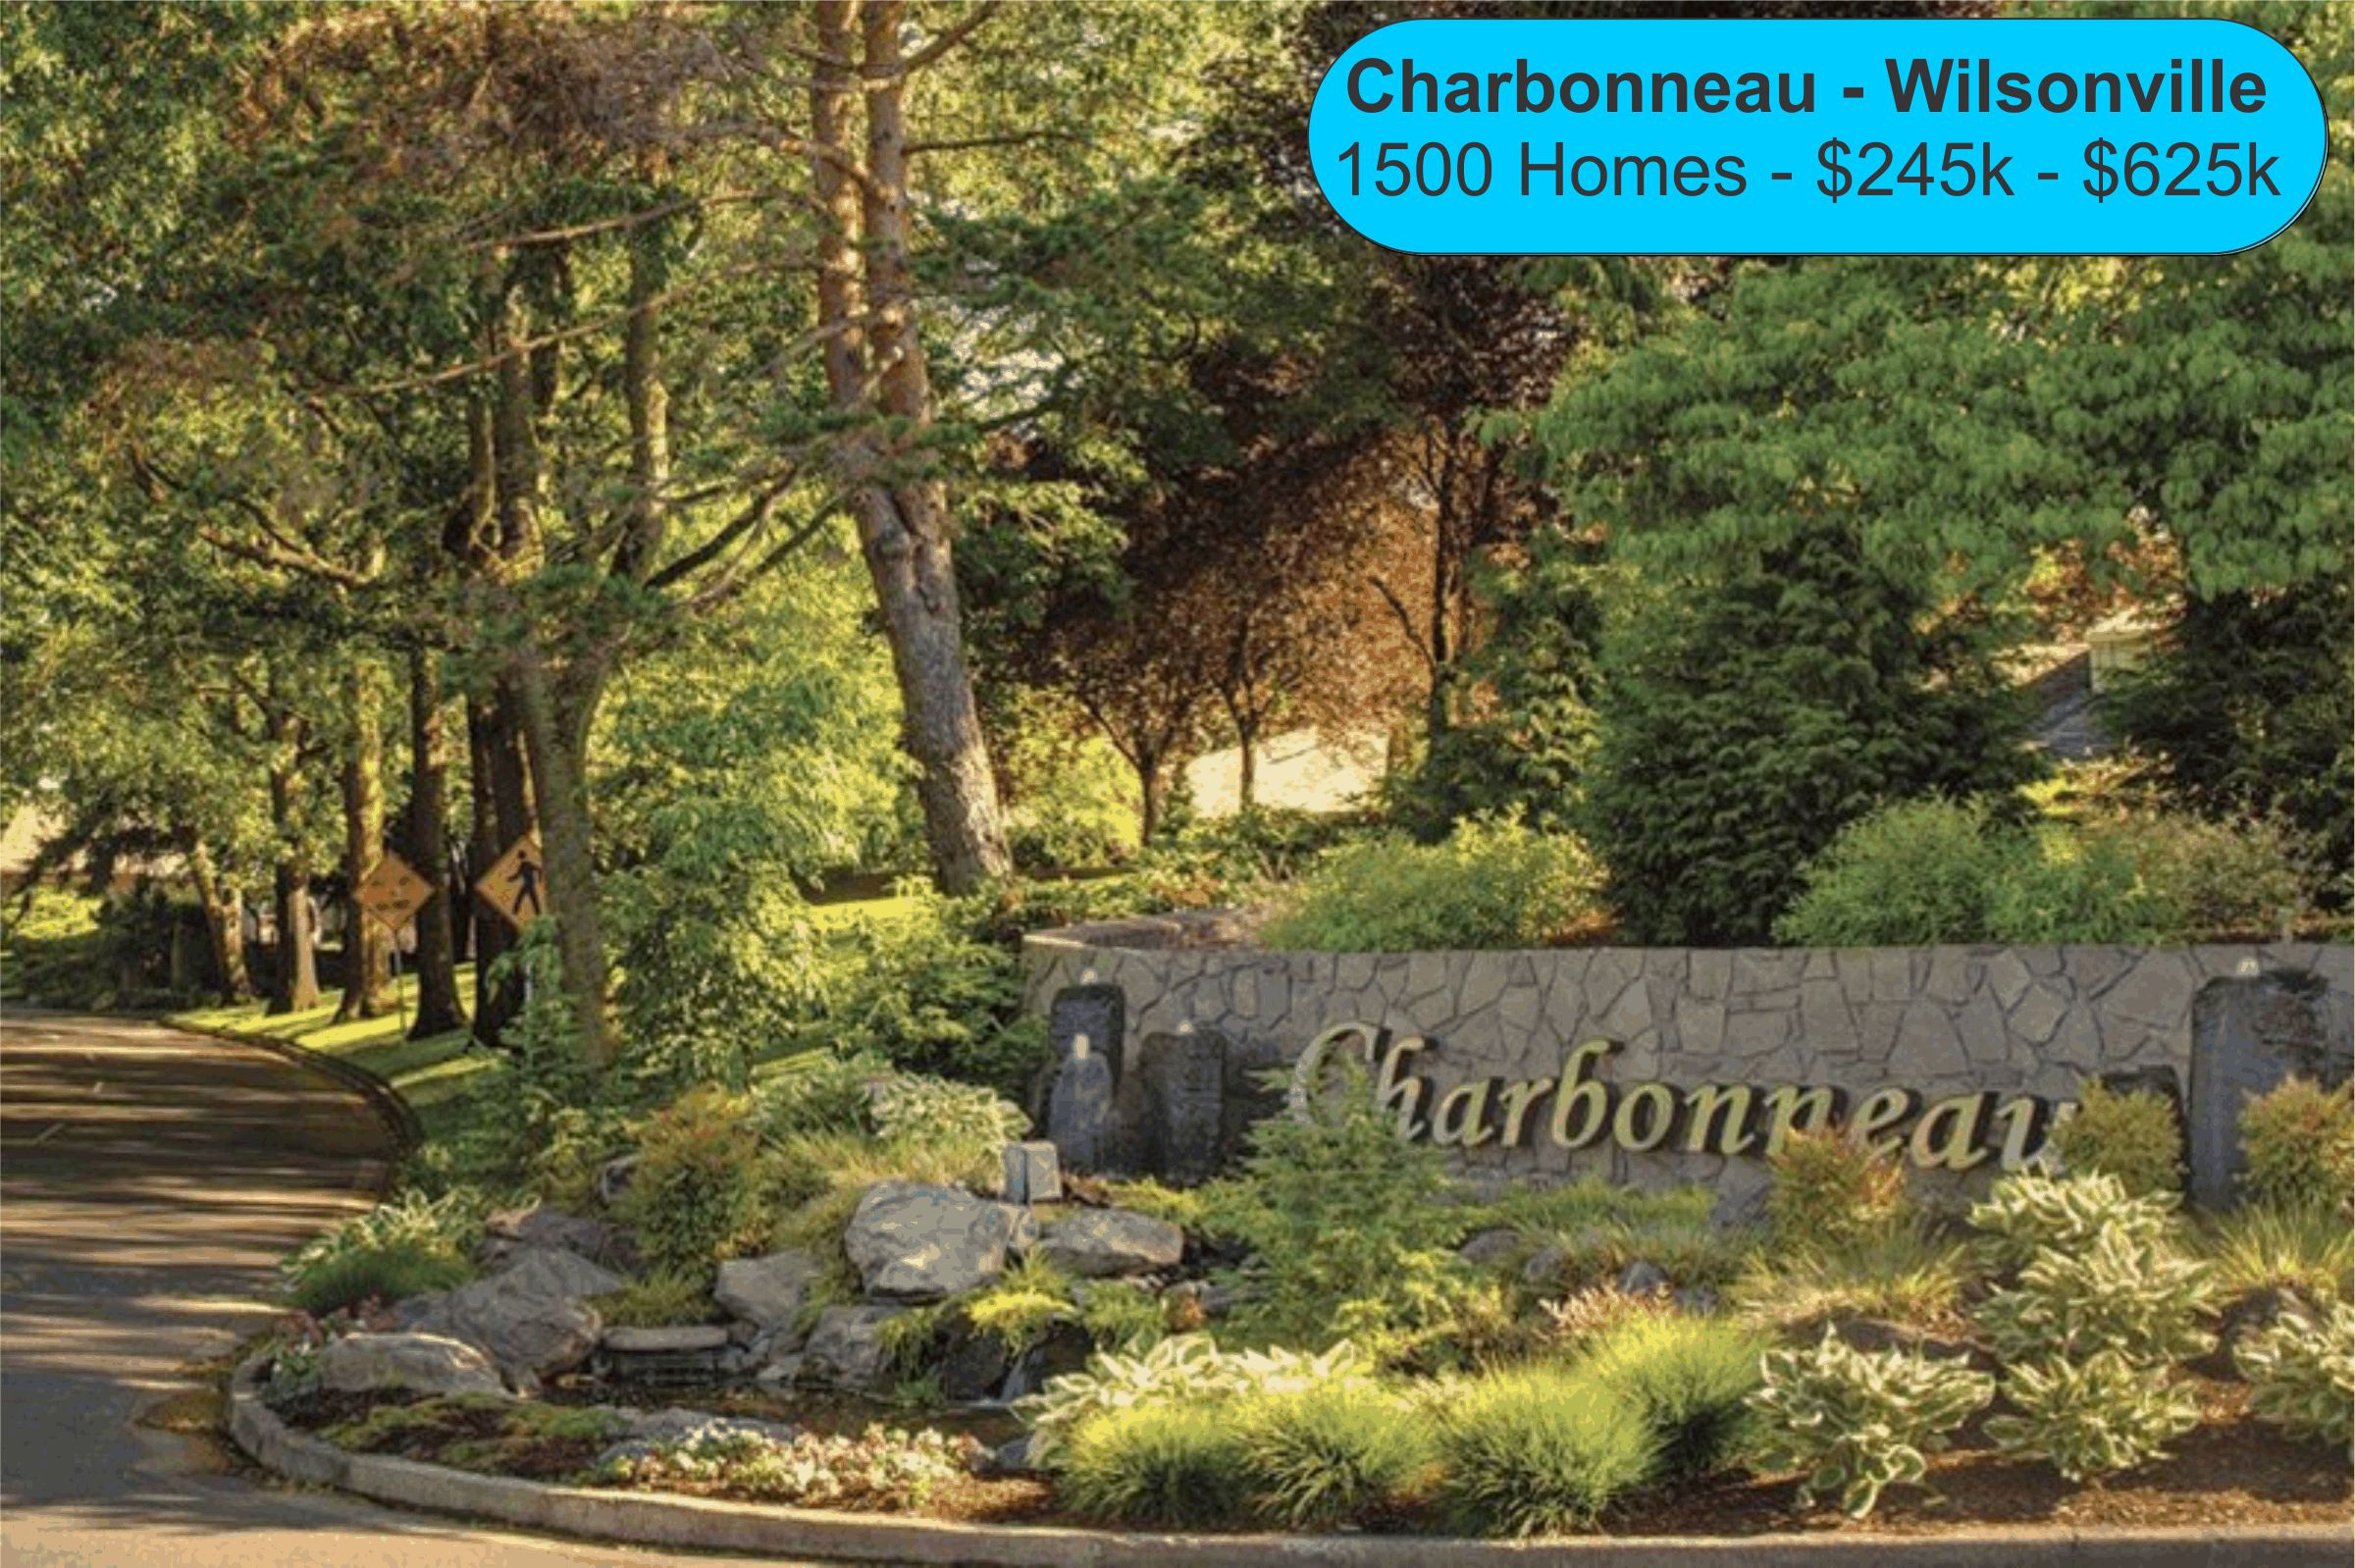 Homes for sale in Charbonneau